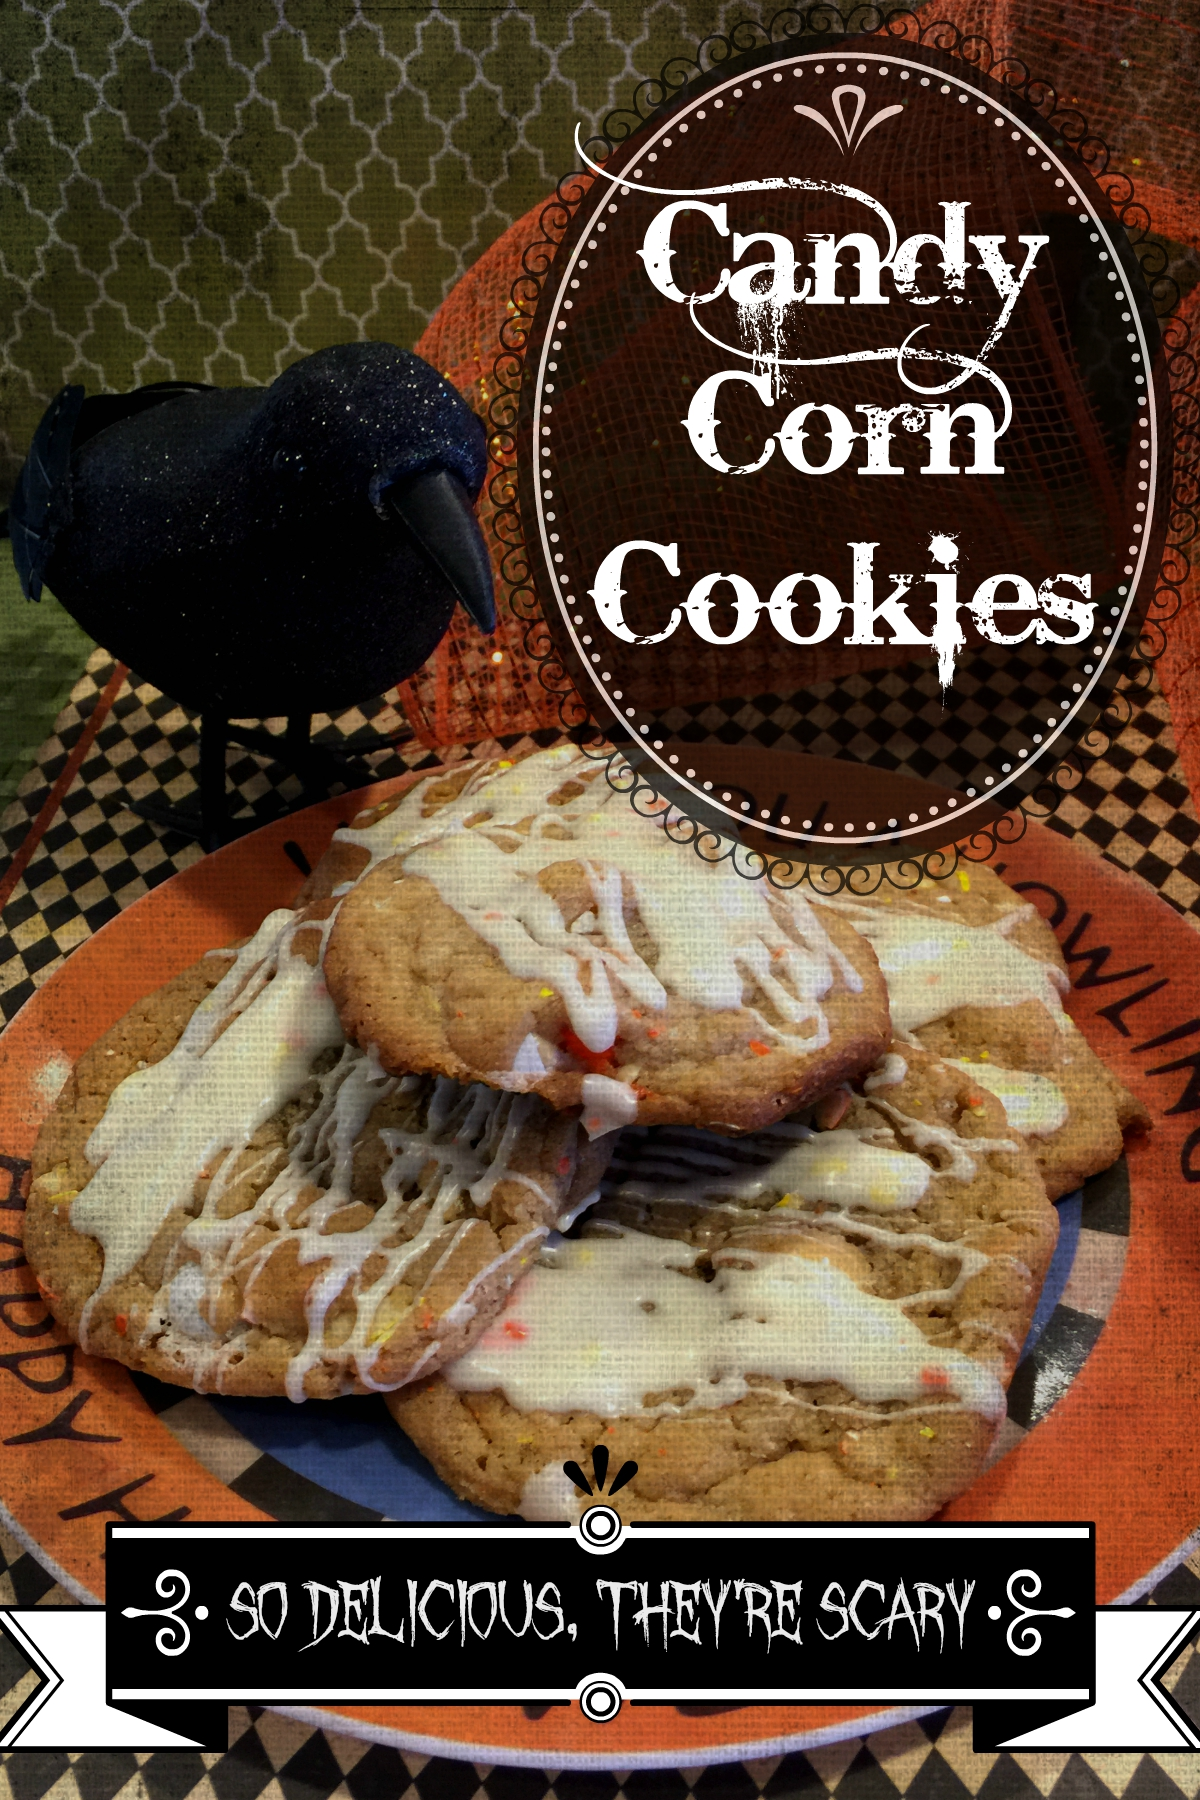 If you love candy corn, you will love these delicious cookies! Give them a try for Halloween.